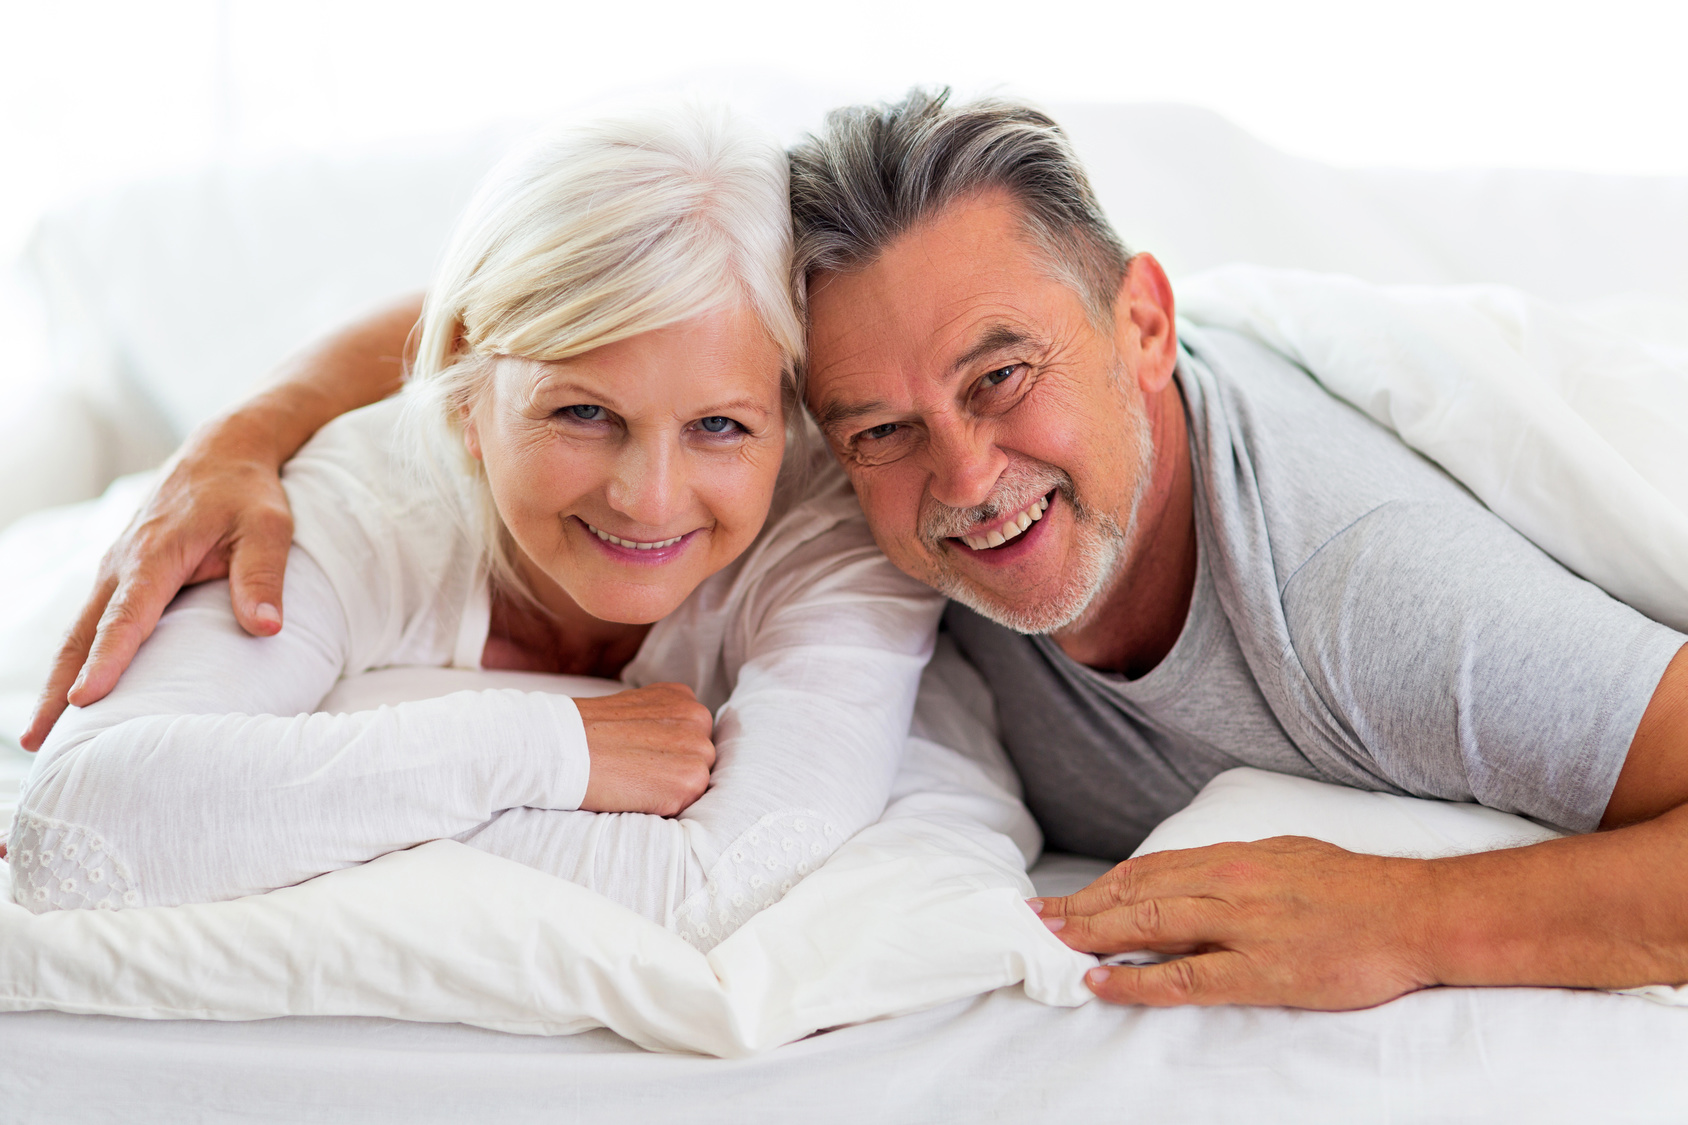 Sleep Apnea Services in Durham, Chapel Hill and Raleigh, NC at Keyser Dentistry